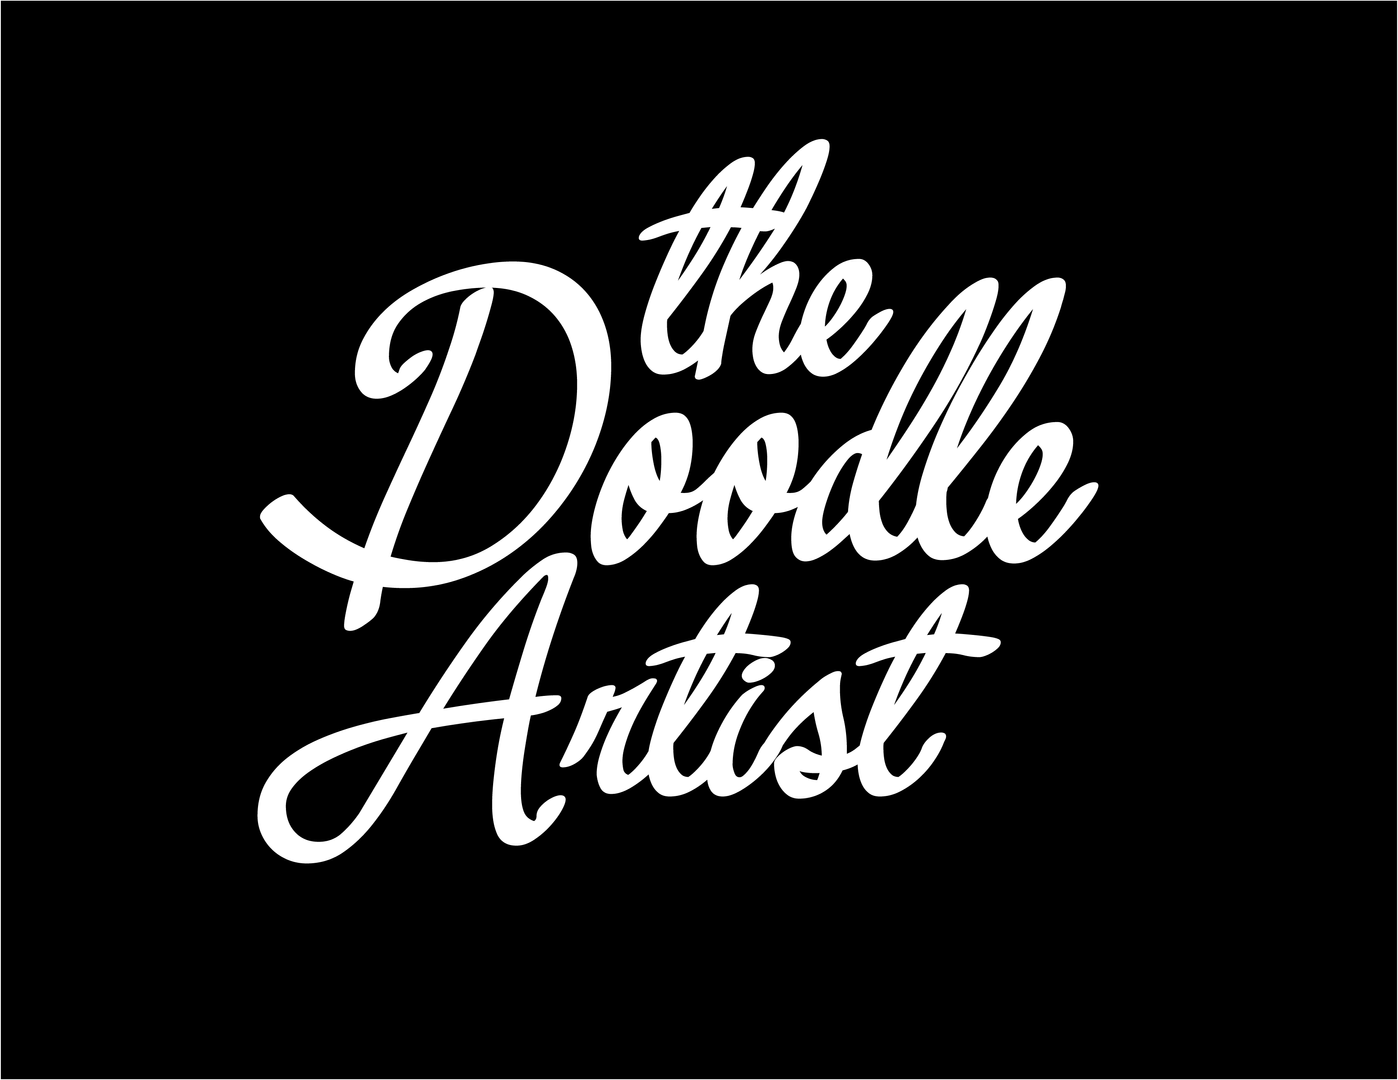 The Doodle Artist